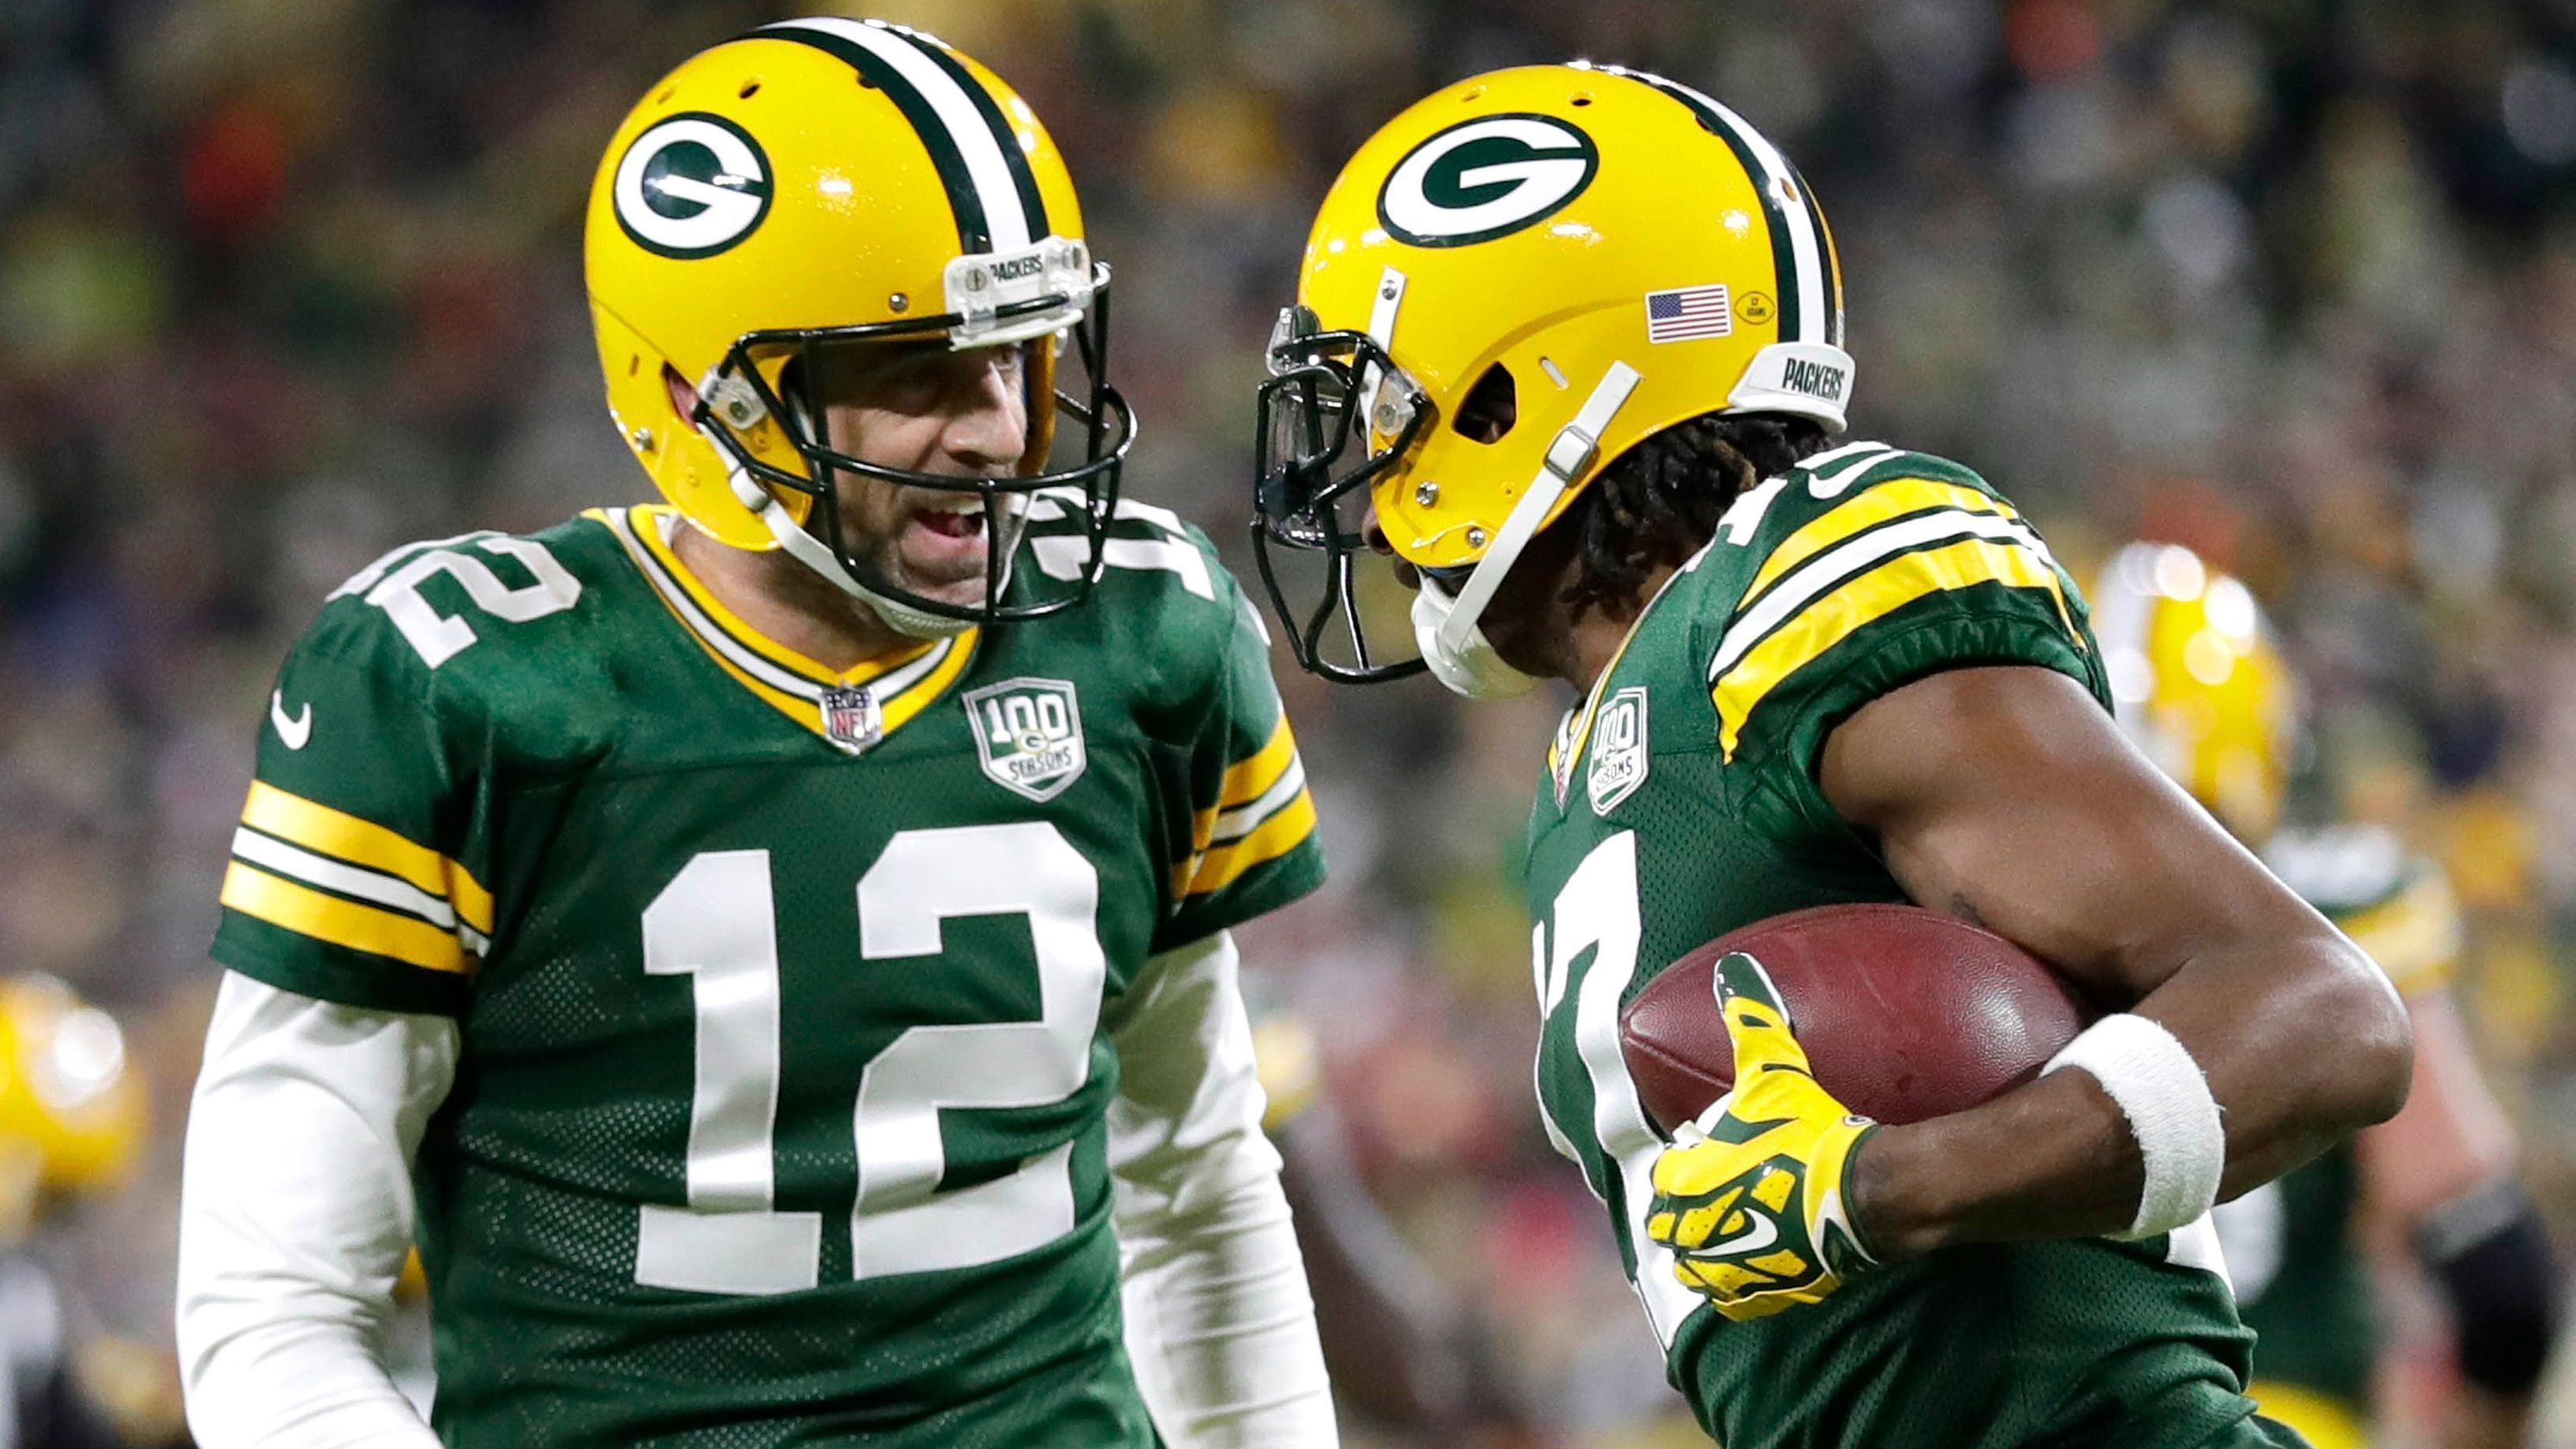 Nfl Predictions Win Loss Ratio Odds For Packers Bears Vikings And Lions In Nfc North League Football Rodgers Green Bay Aaron Rodgers